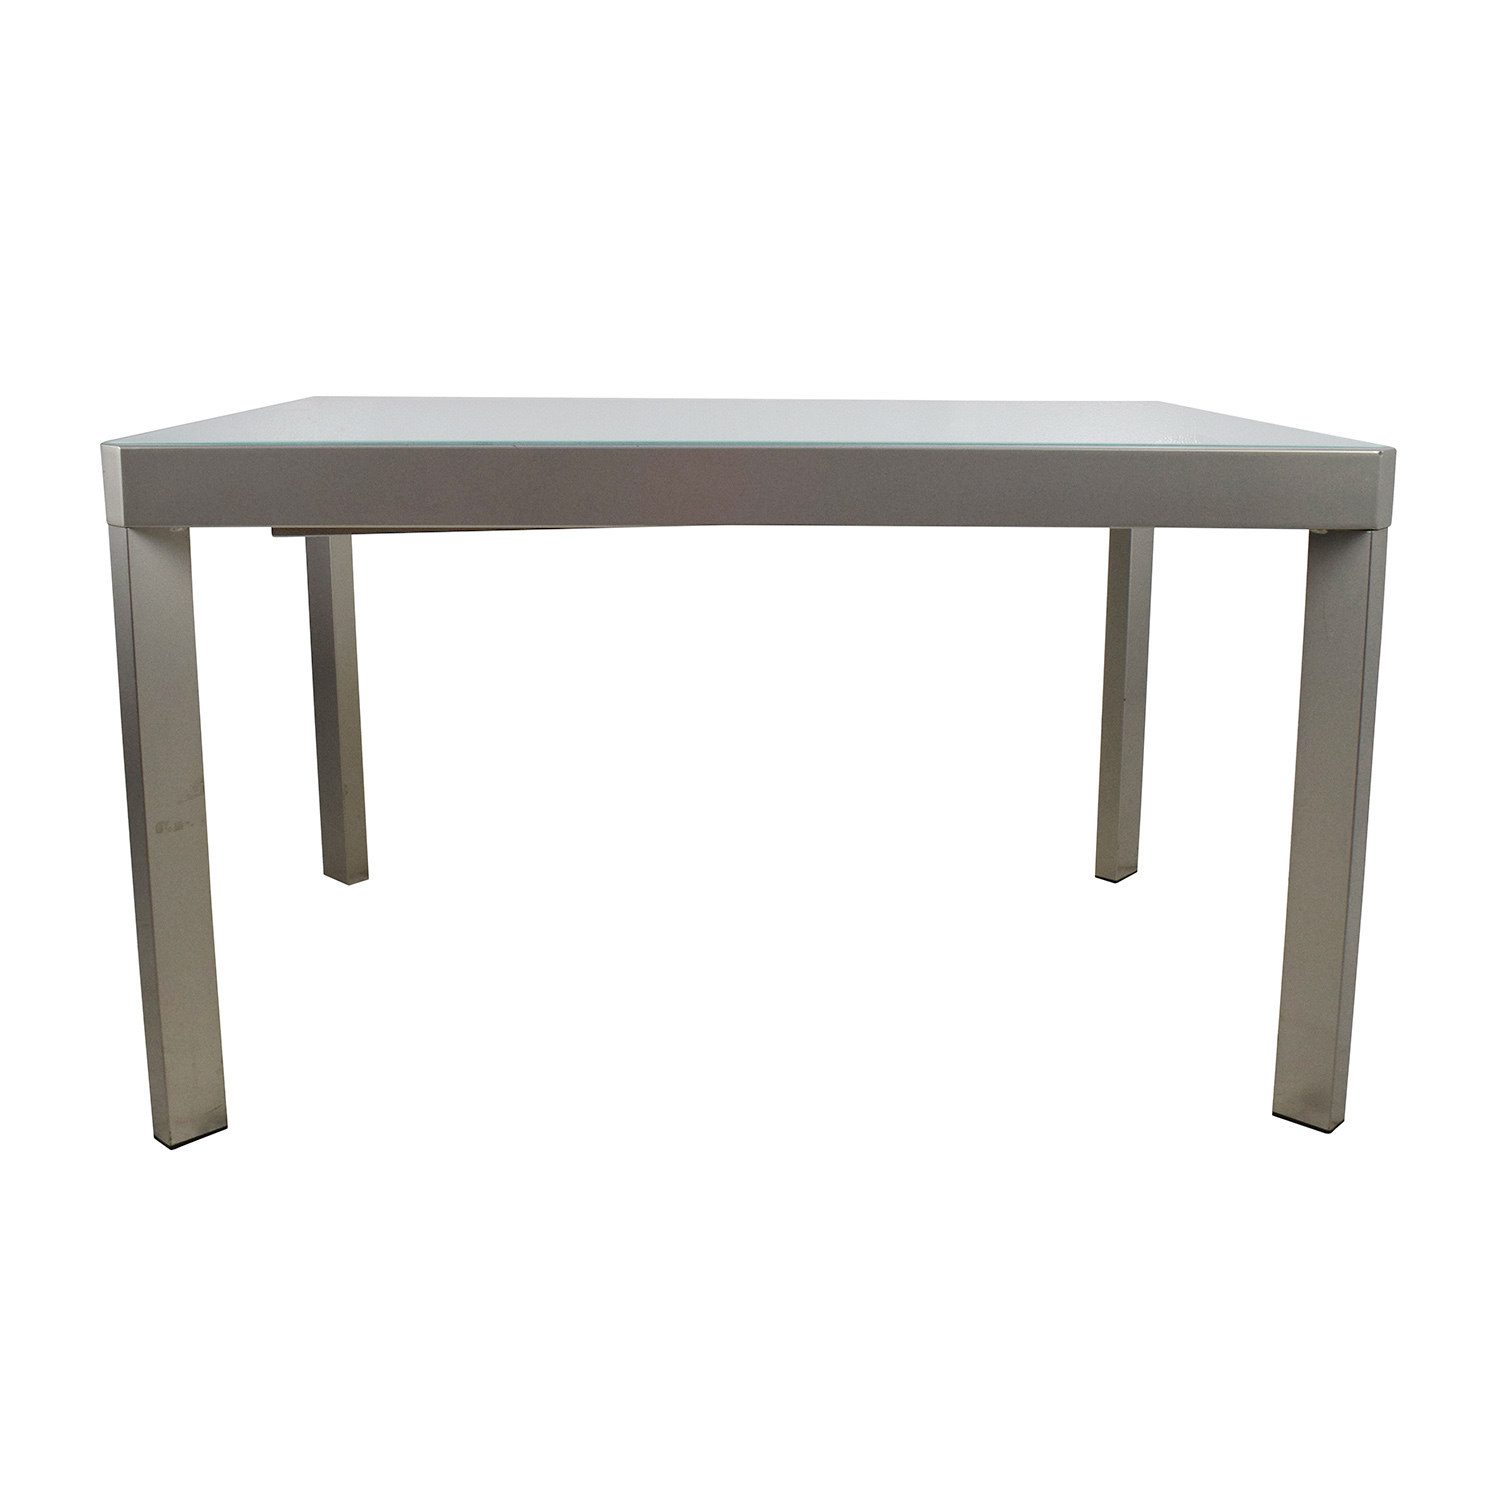 Shop calligaris dining table extendable: Used furniture on